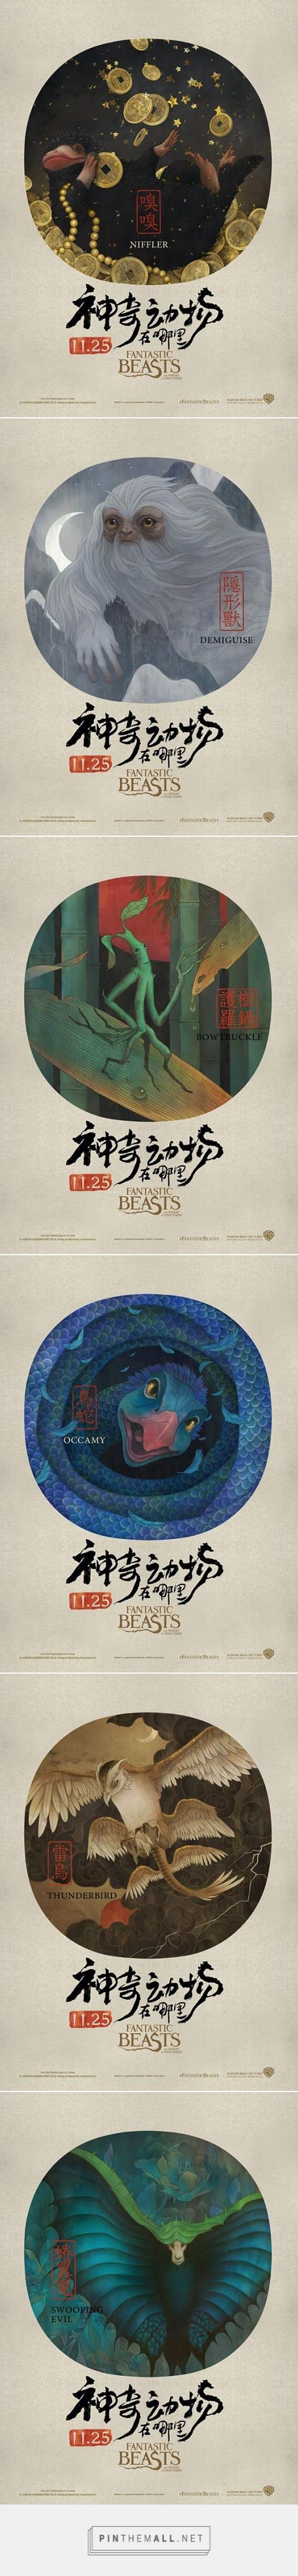 "Amazing Chinese posters for ""Fantastic beasts and Where to Find Them"" - Album on Imgur"